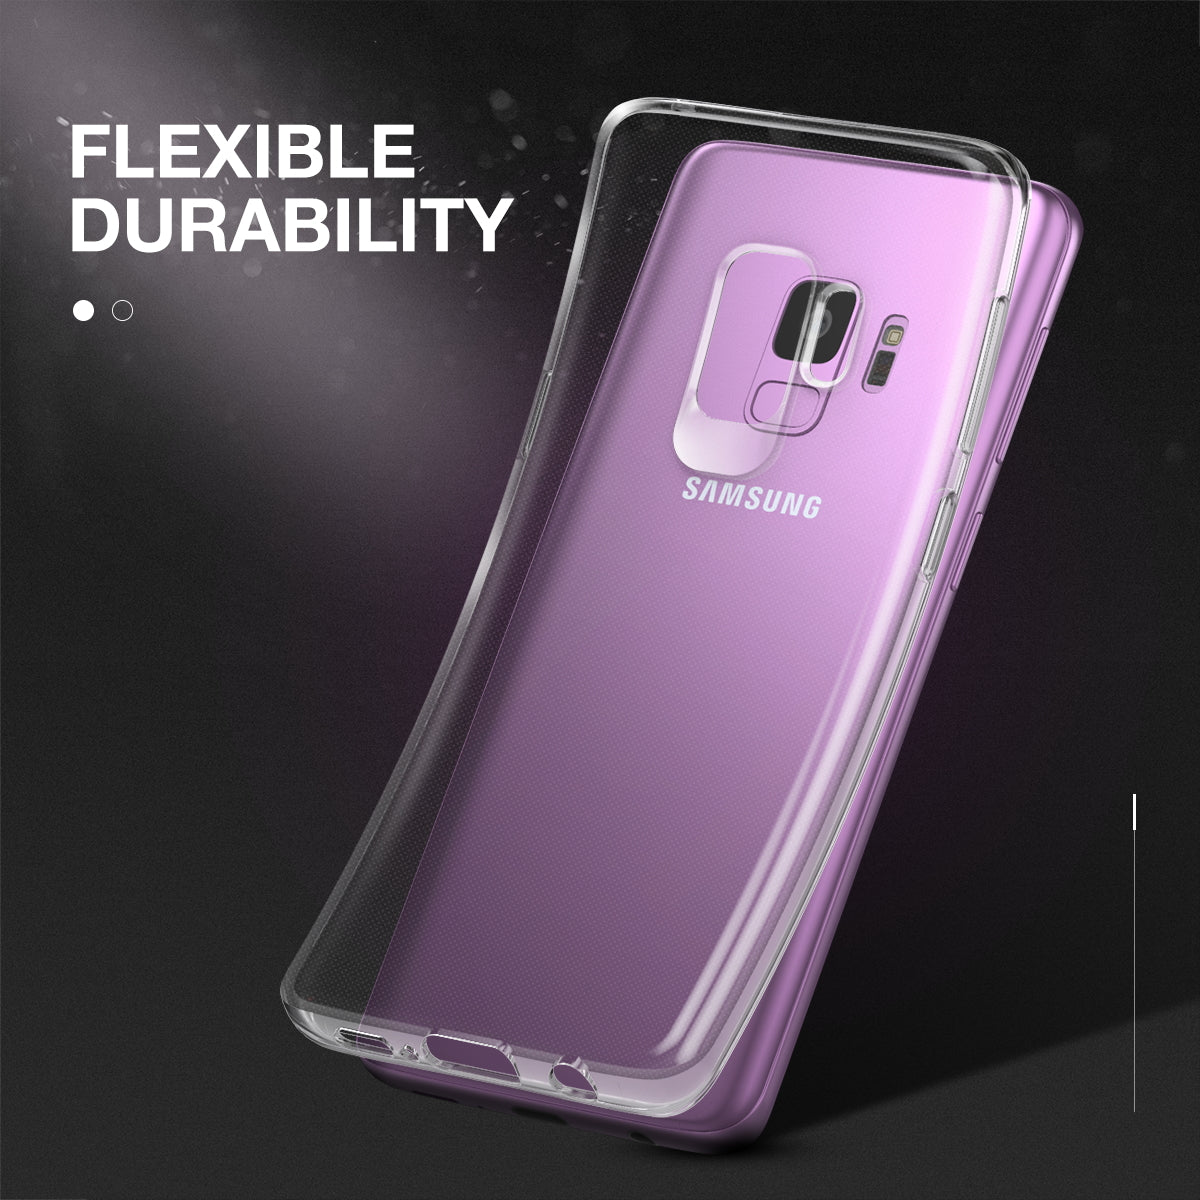 Samsung Galaxy S9 Plus Case Cover, Maxhsield Flex Air TPU Crystal Clear Case